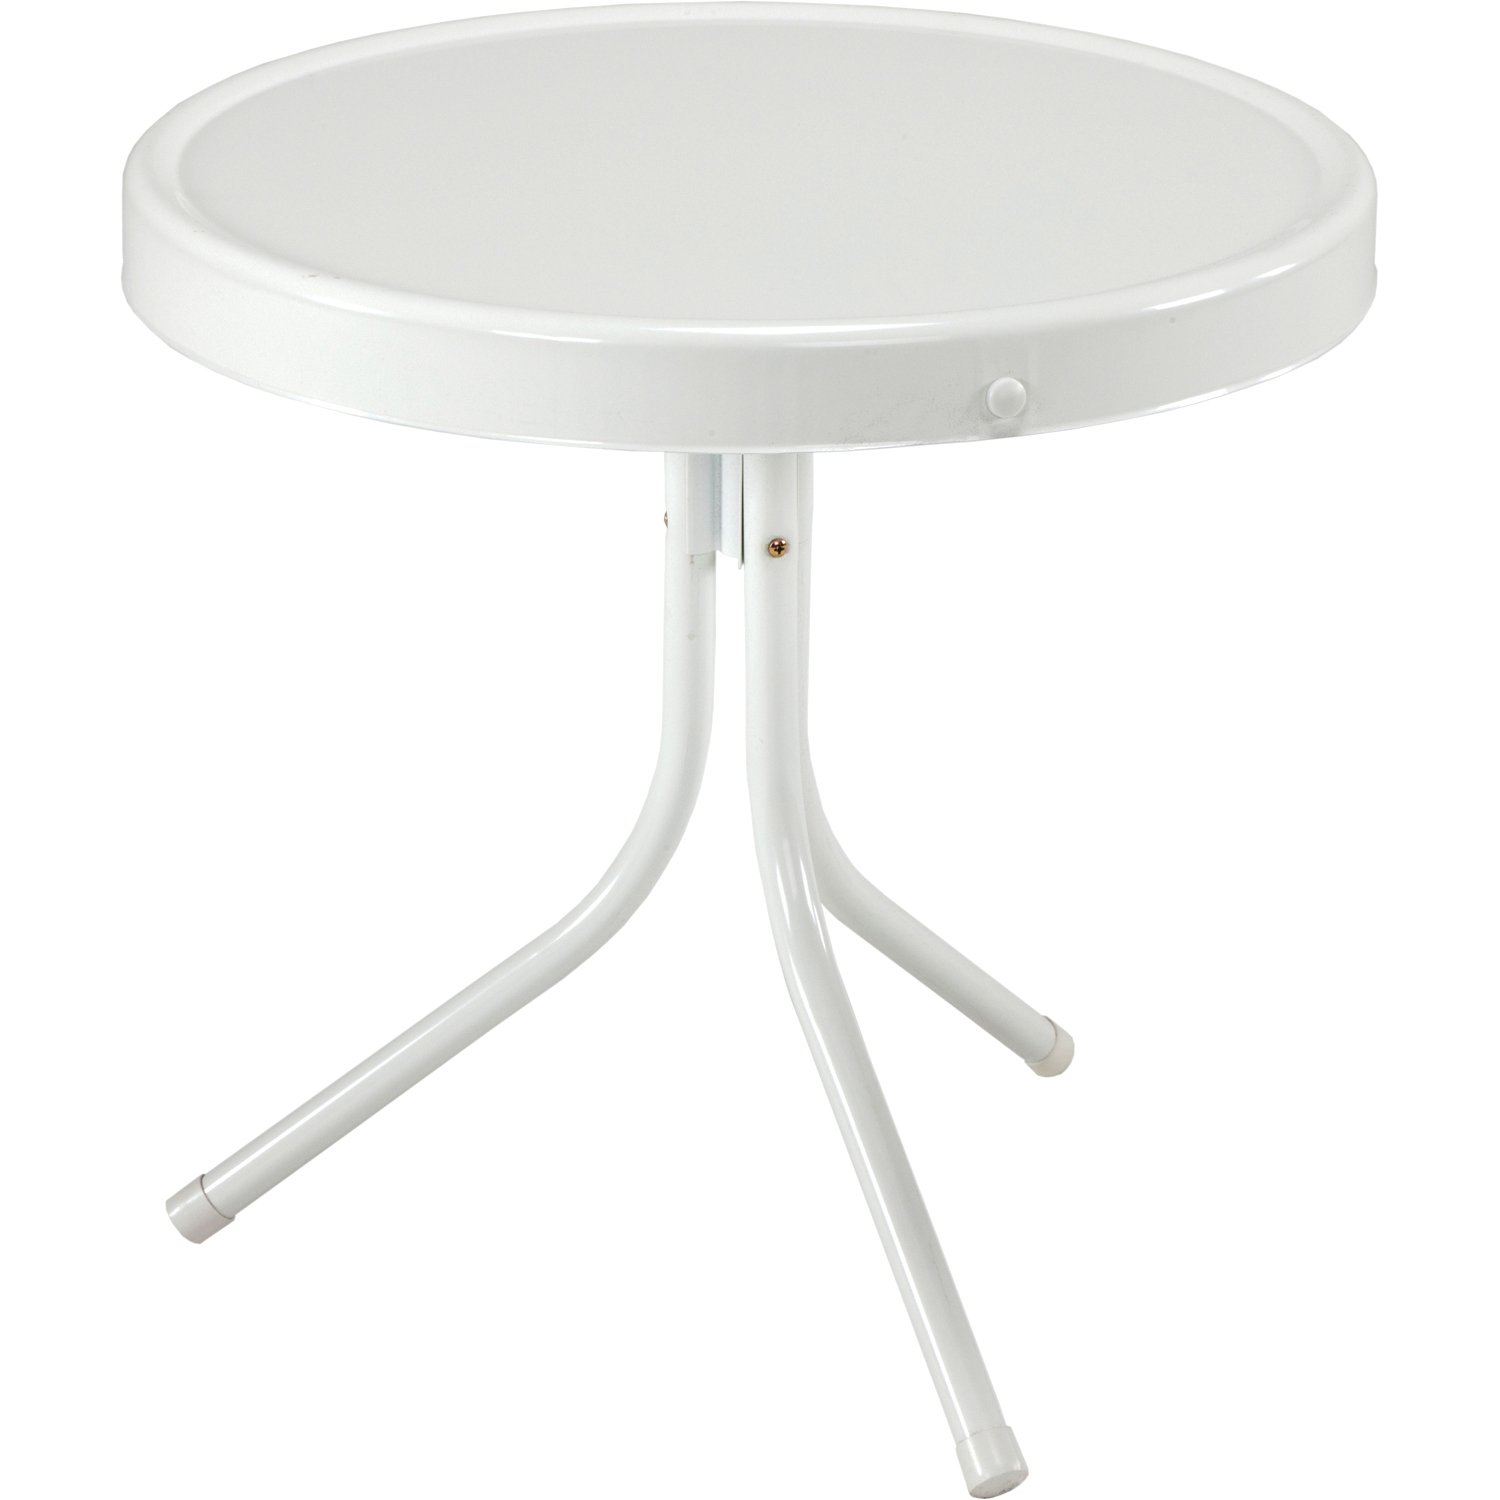 Jack Post BH-2W Retro Table, 20-1/2 by 20-Inch, White by Jack Post